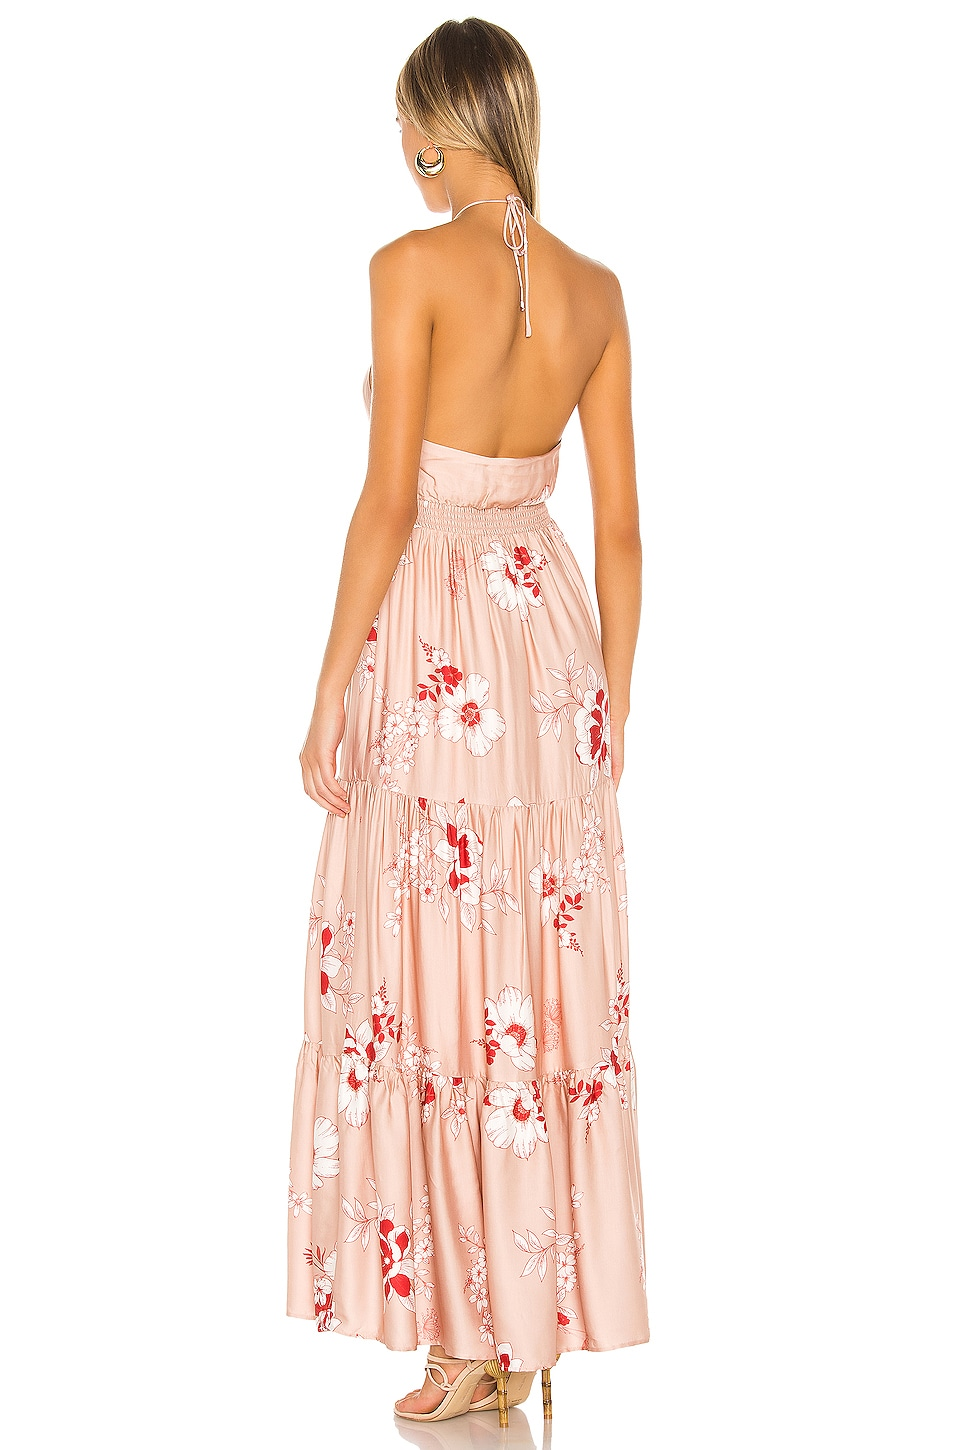 Pedro Maxi Dress, view 3, click to view large image.